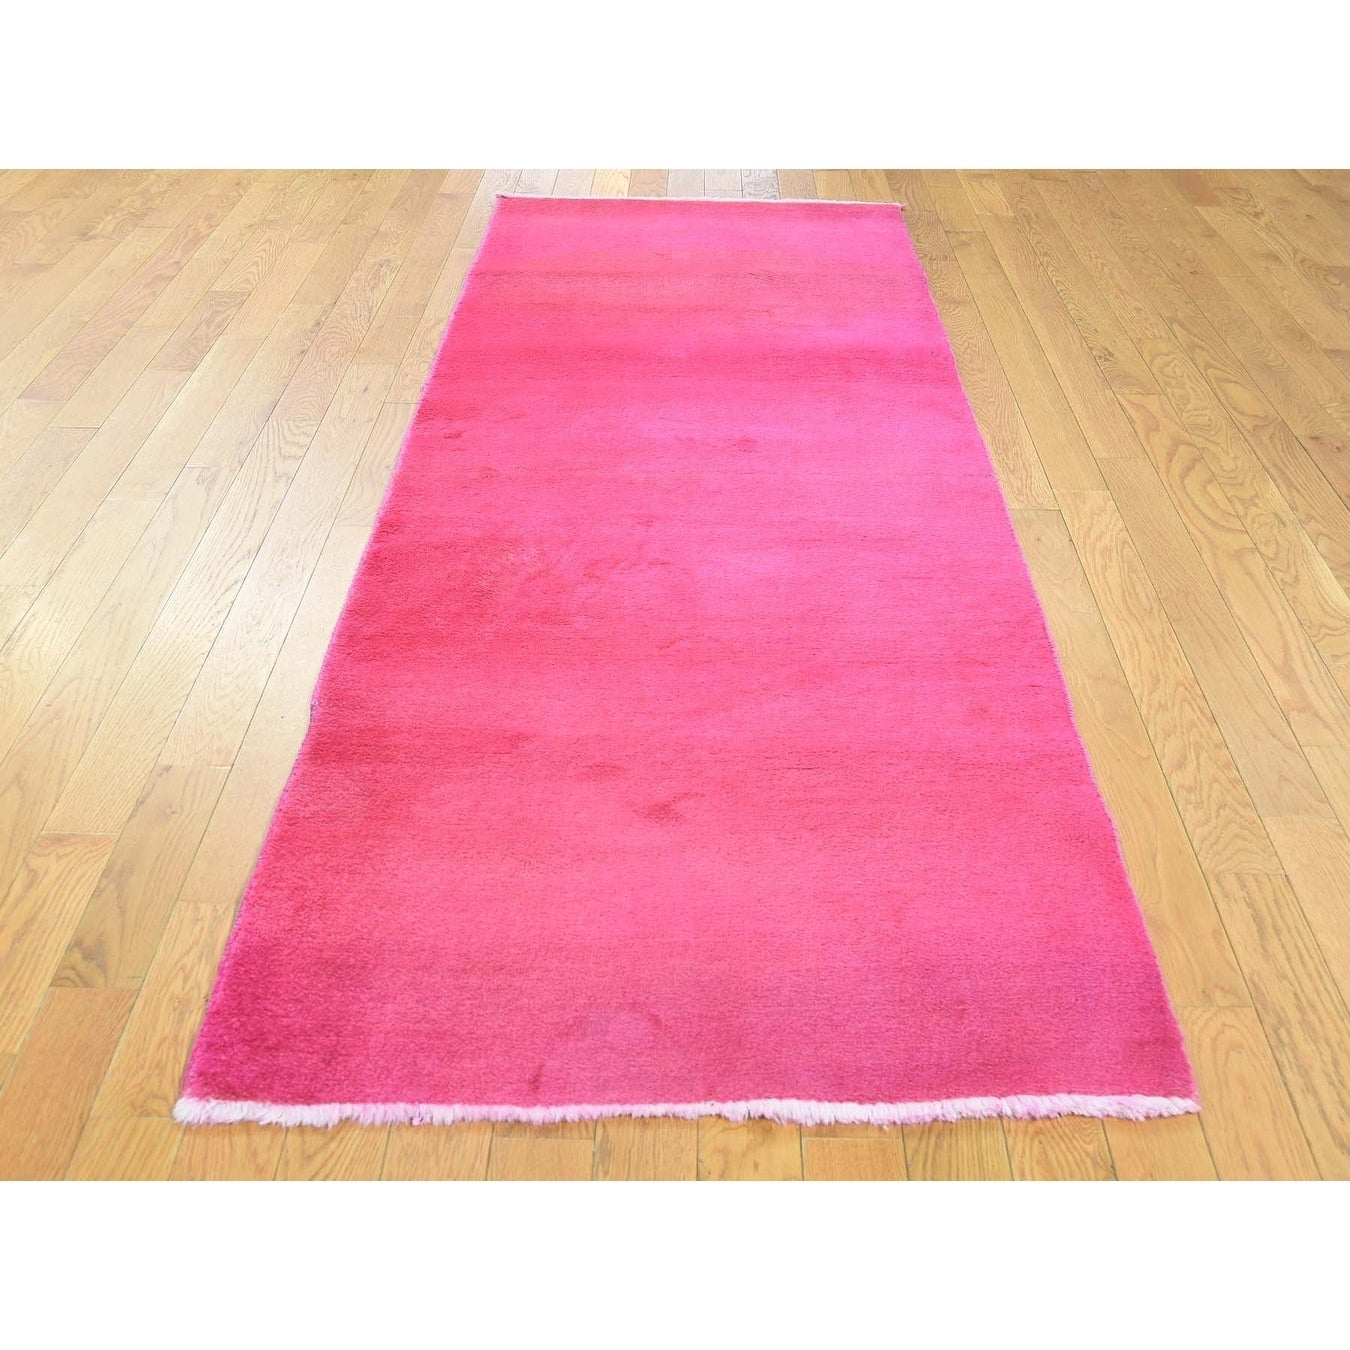 Hand Knotted Pink Overdyed & Vintage with Wool Oriental Rug - 210 x 82